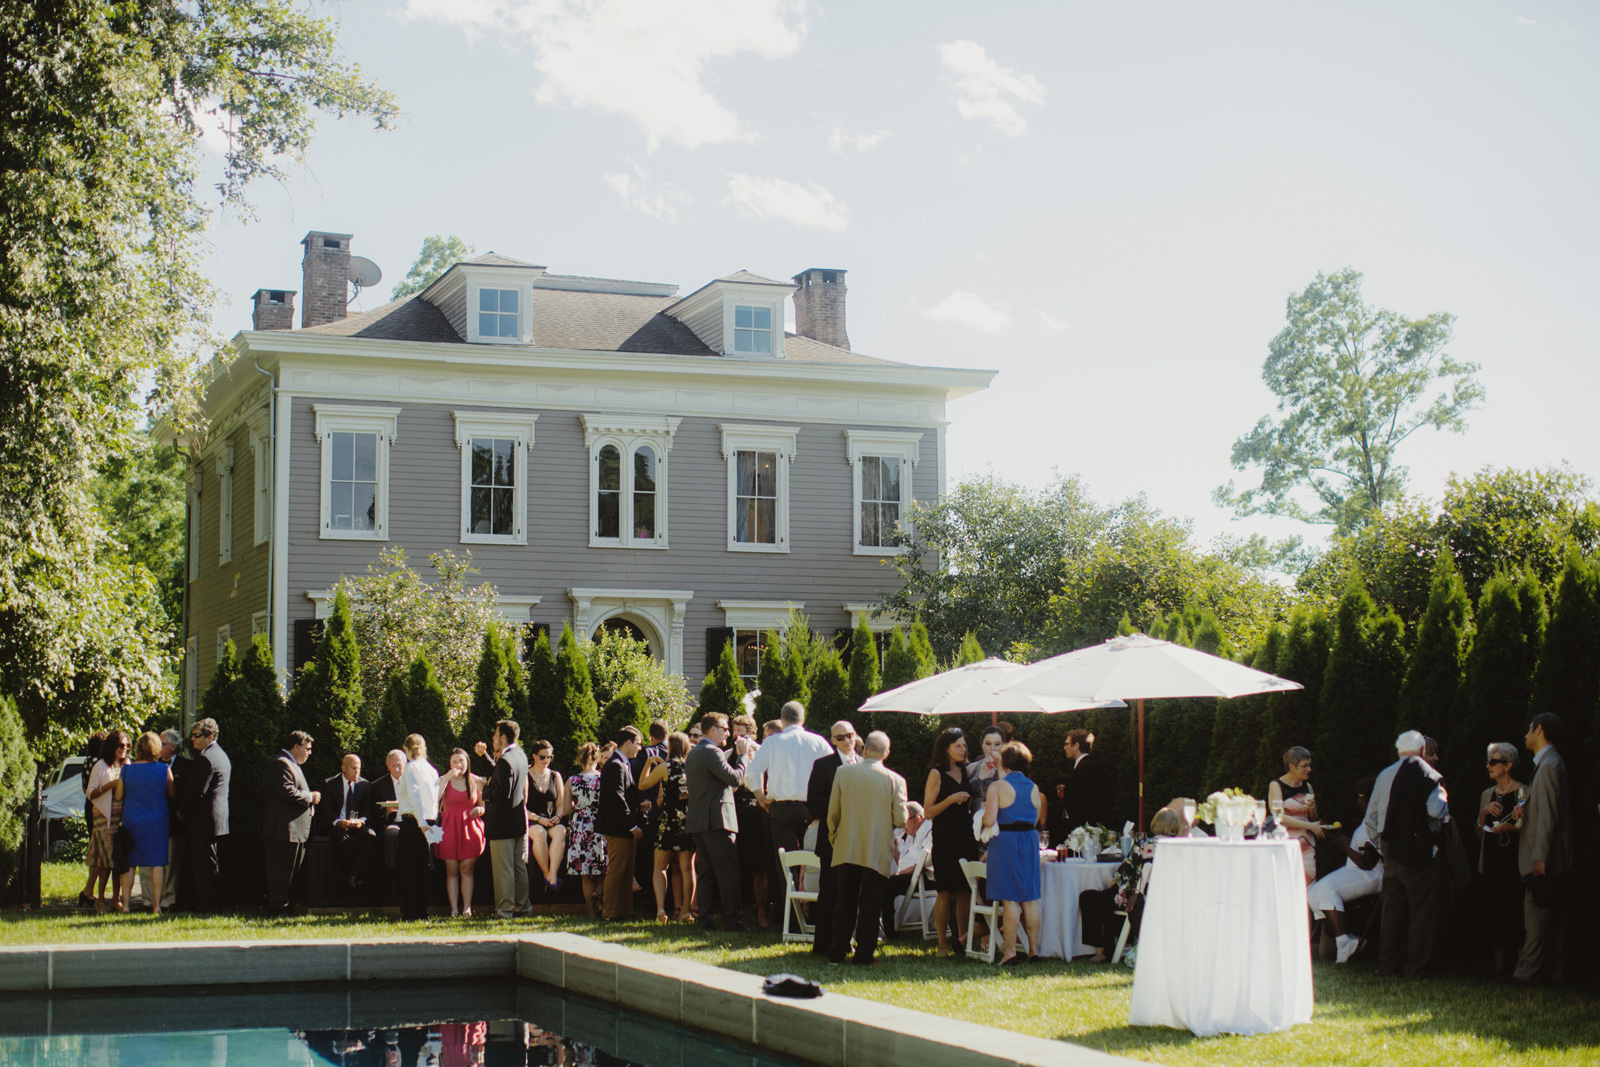 Tivoli Ny Images Ham House Wedding Tivoli New York Samm Blake